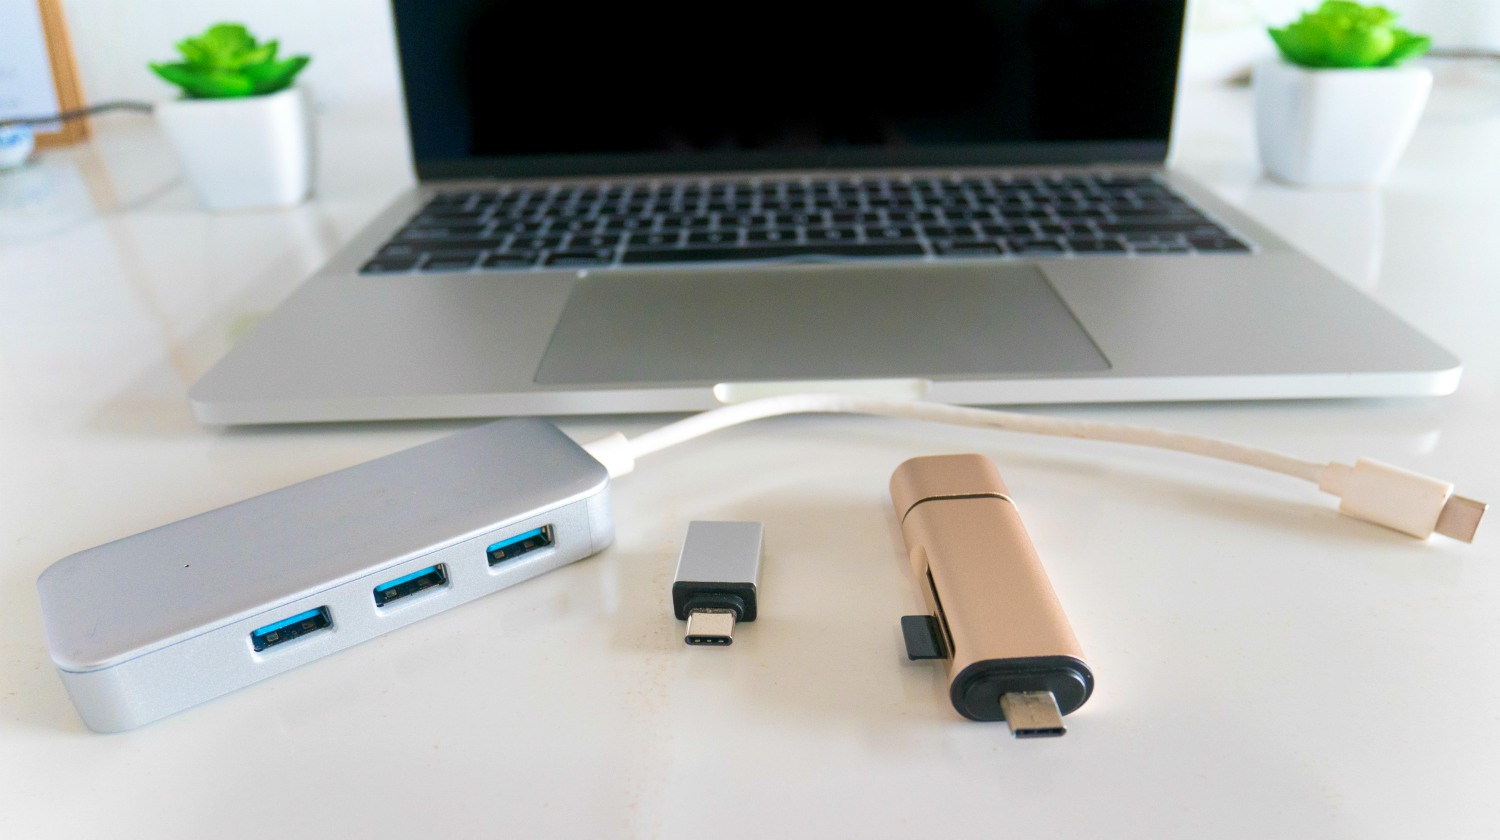 Now Recover Corrupted Files from USB Drive in Just Three Simple Steps